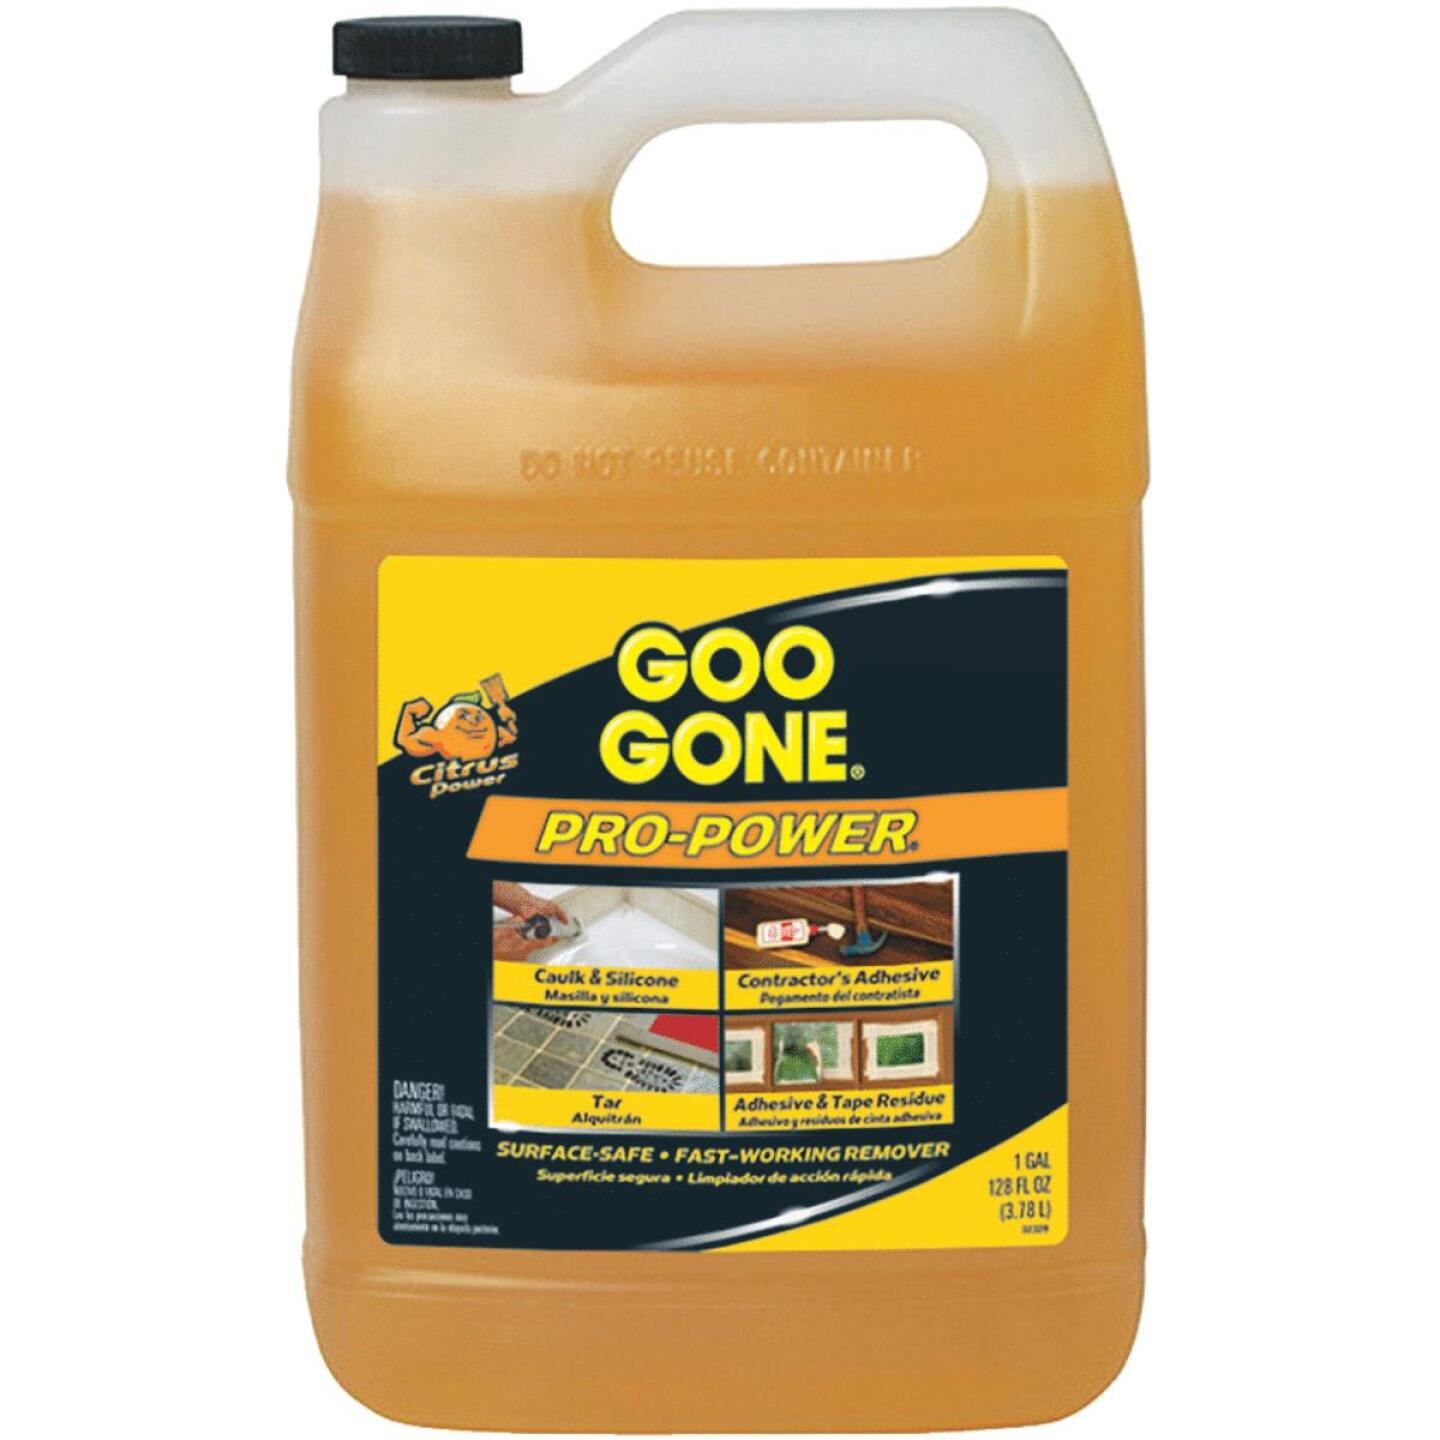 Goo Gone 1 Gal. Pro-Power Adhesive Remover Image 111